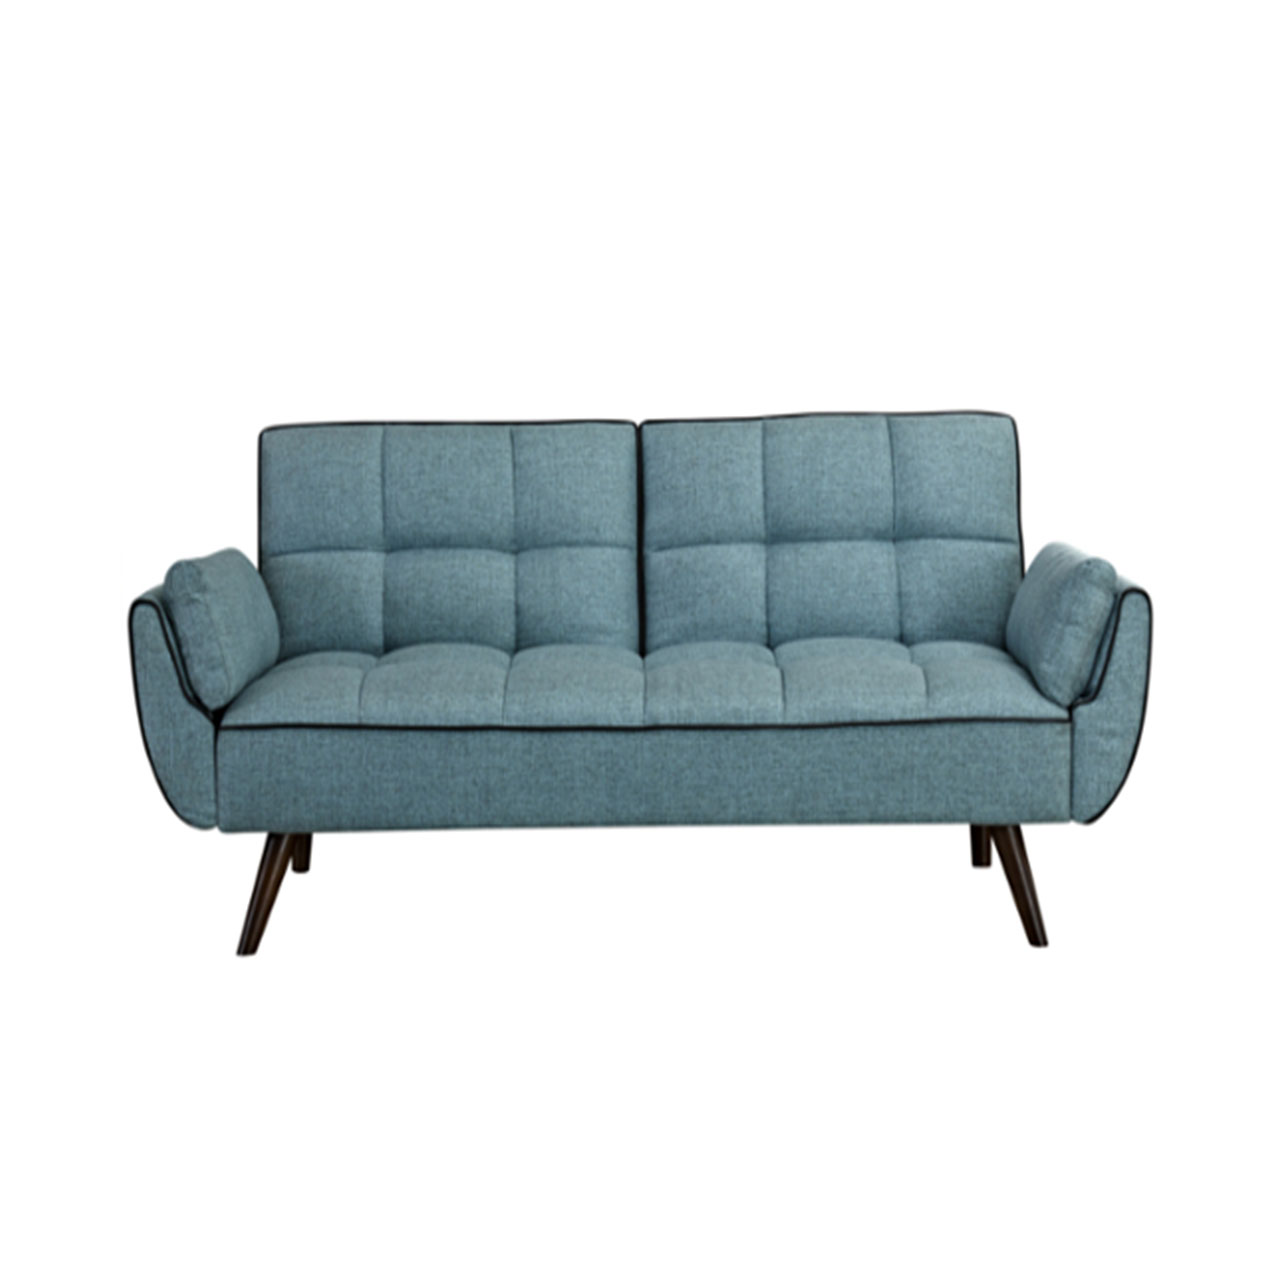 Sperry sofa bed furniture store manila philippines urban for Sofa bed store